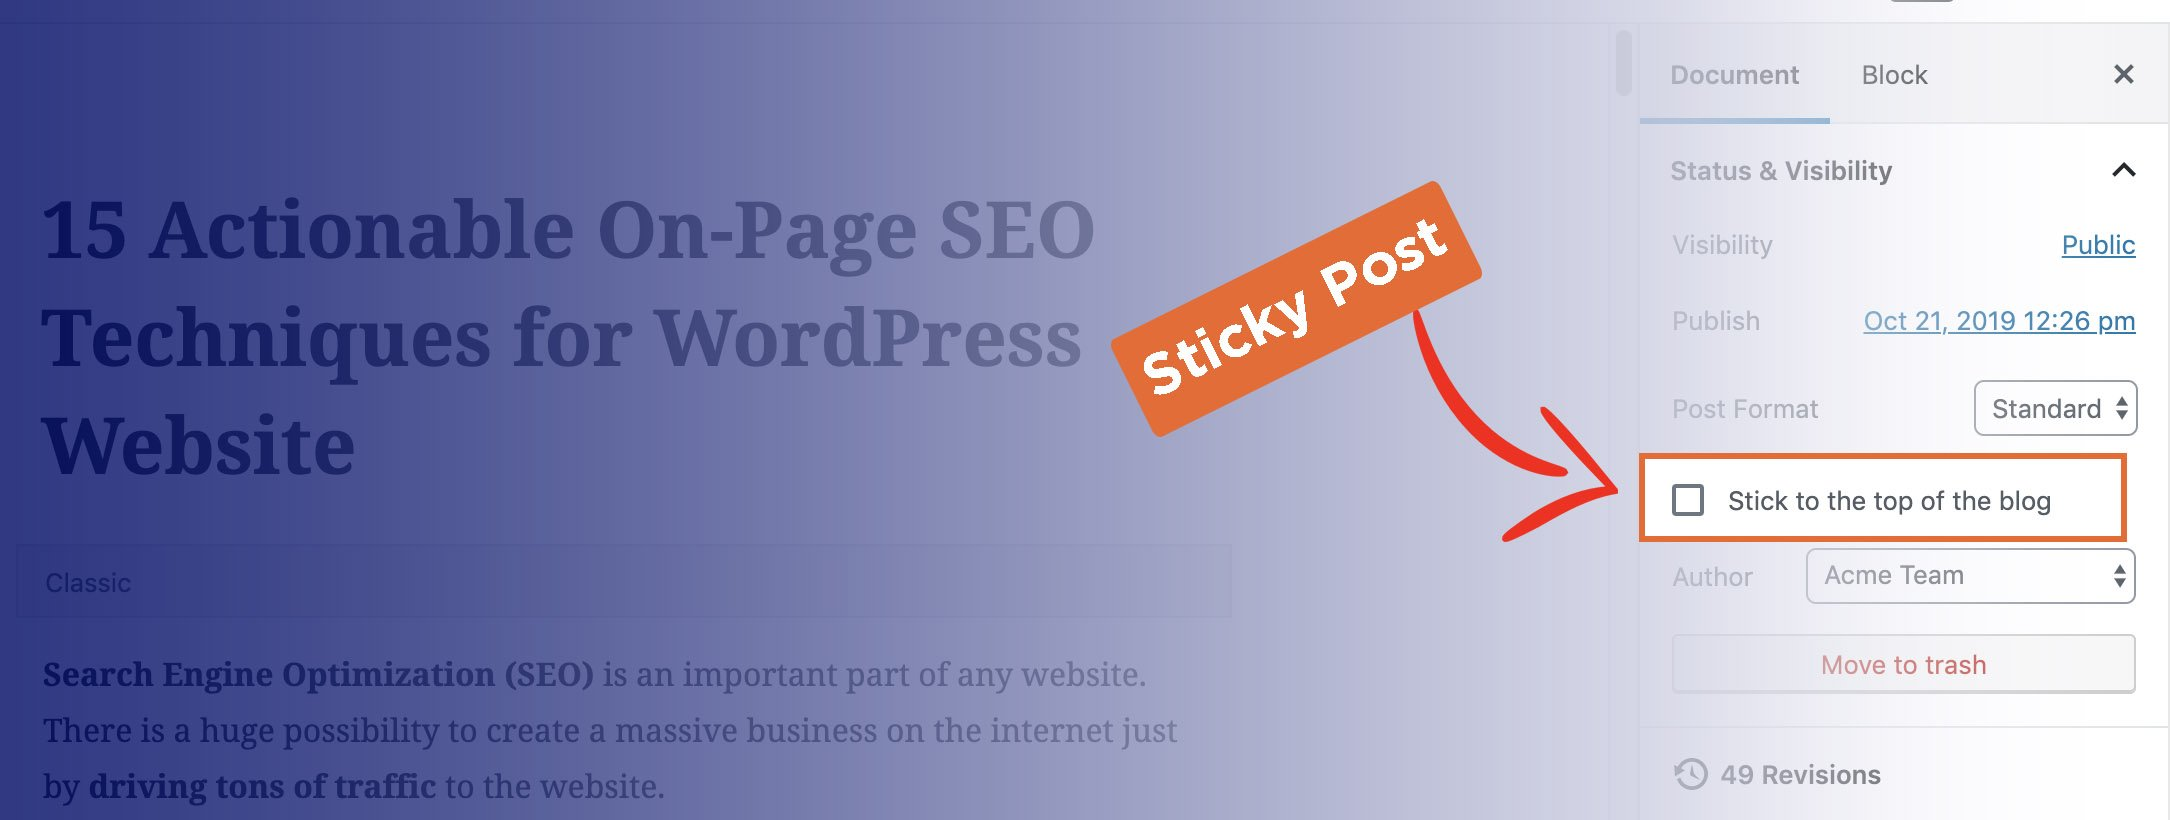 sticky post in wordpress